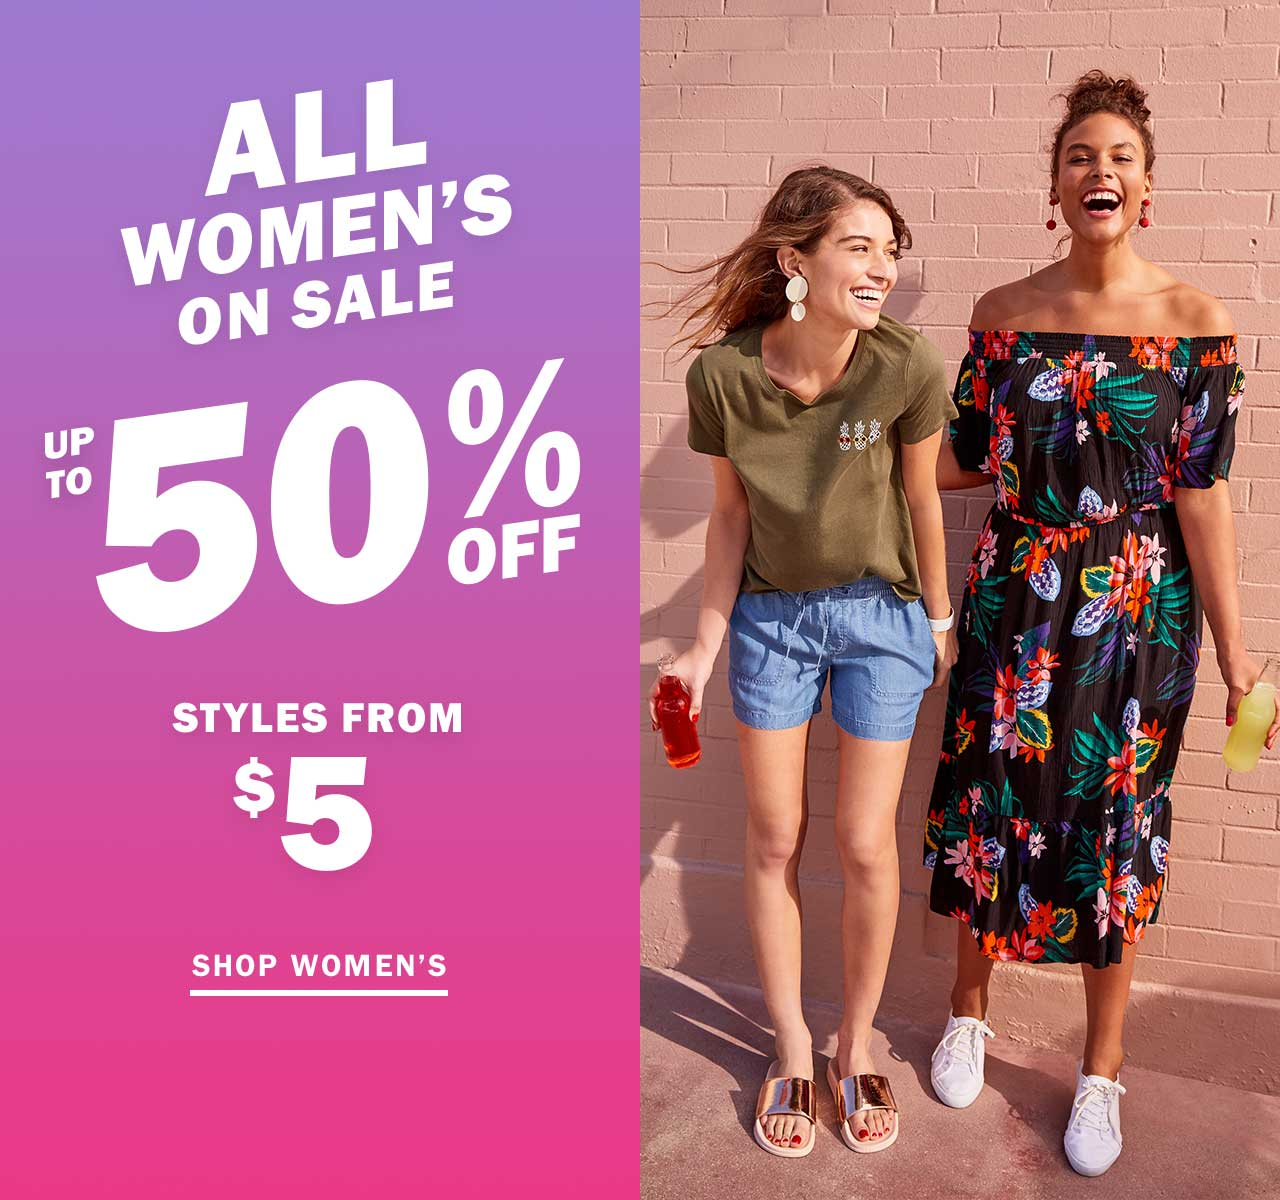 ALL WOMEN'S ON SALE | UP TO 50% OFF | SHOP WOMEN'S